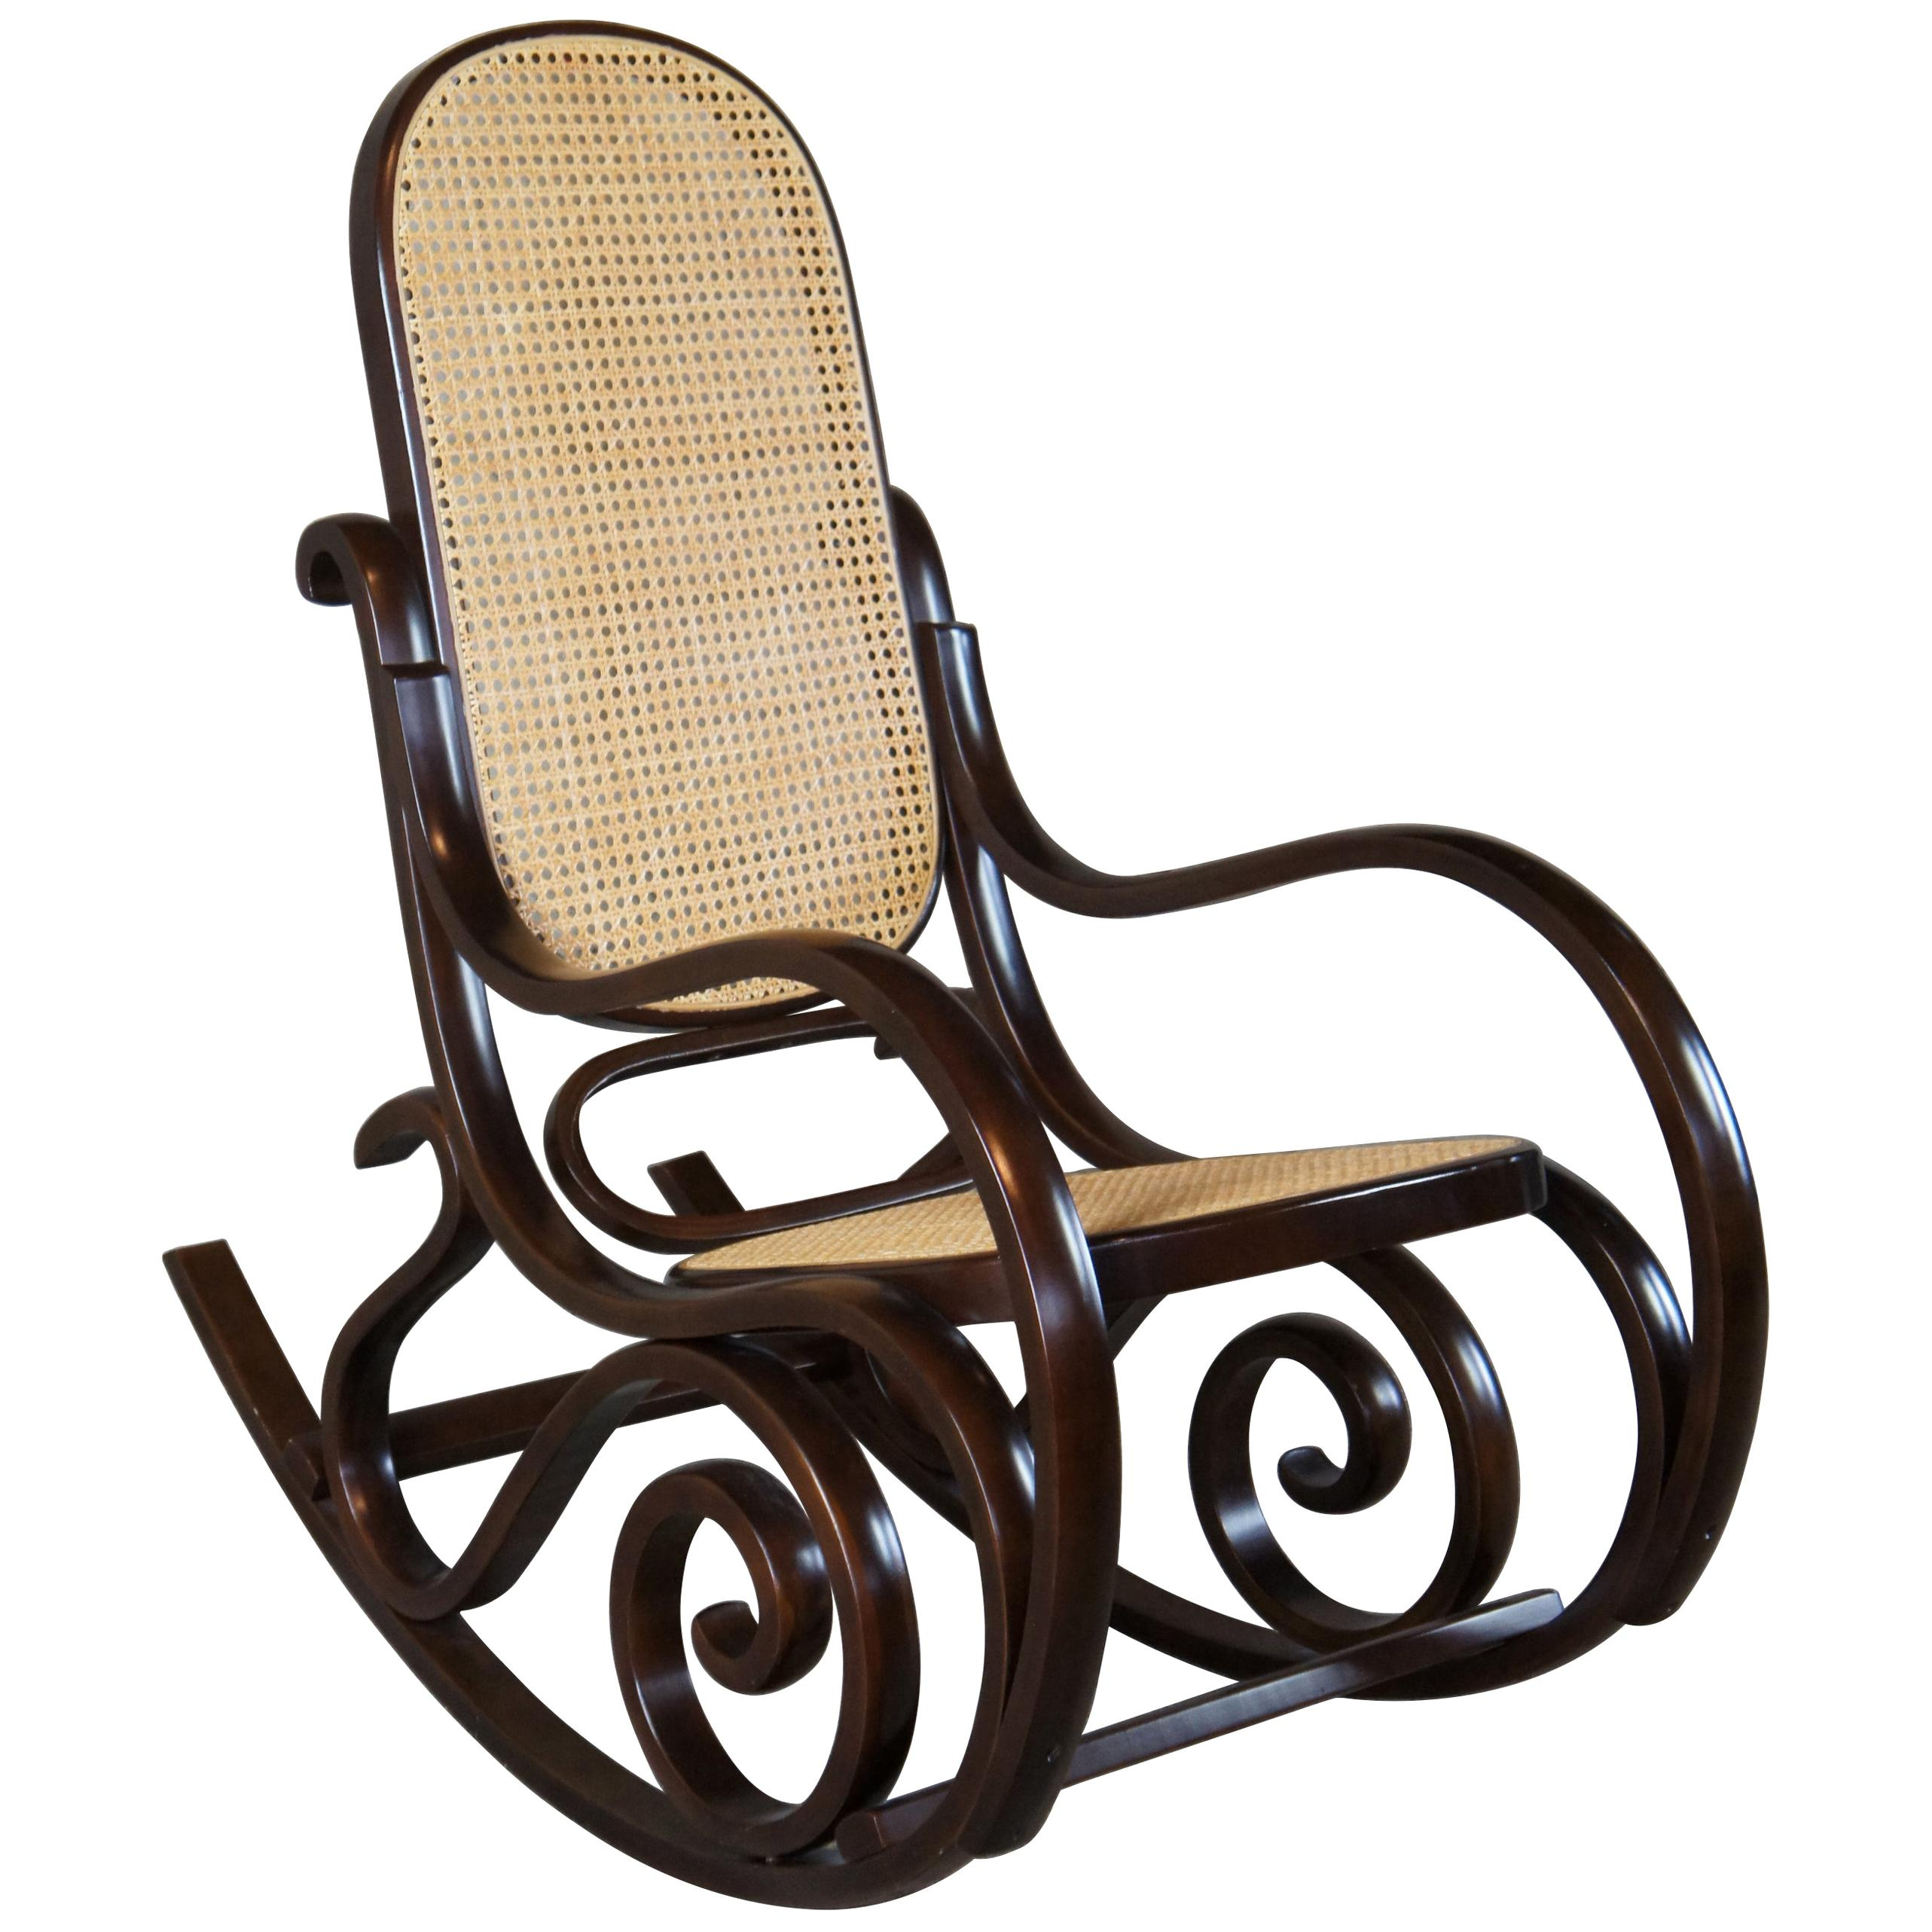 Iconic Thonet Style Bentwood Rocking Chair Natural Cane Rattan Seat Back Rocker